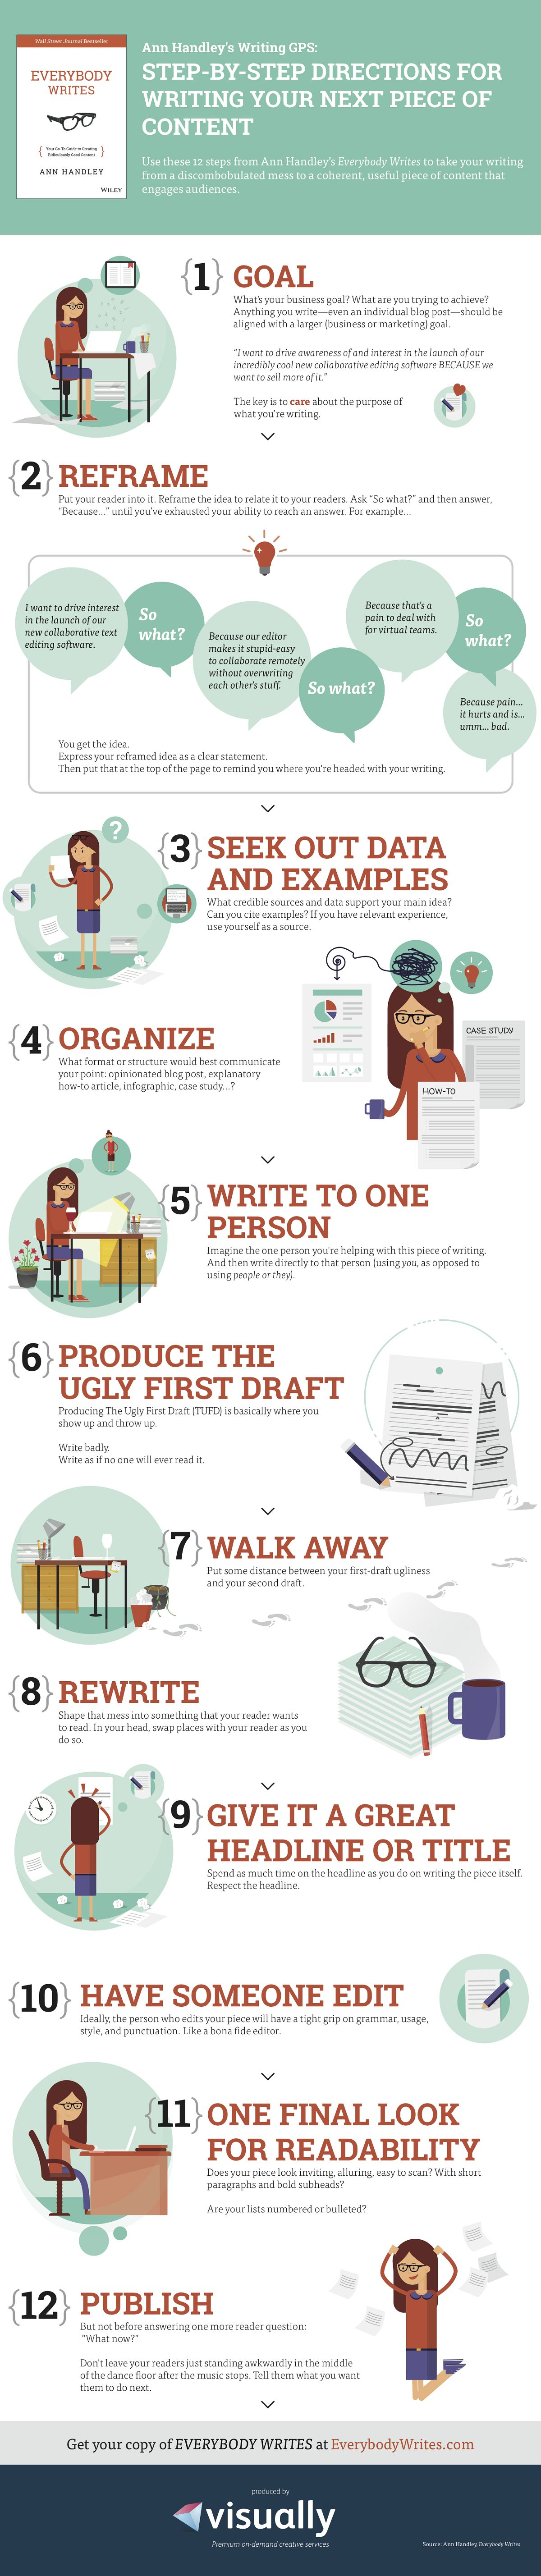 12 Steps for writing your next piece of content.